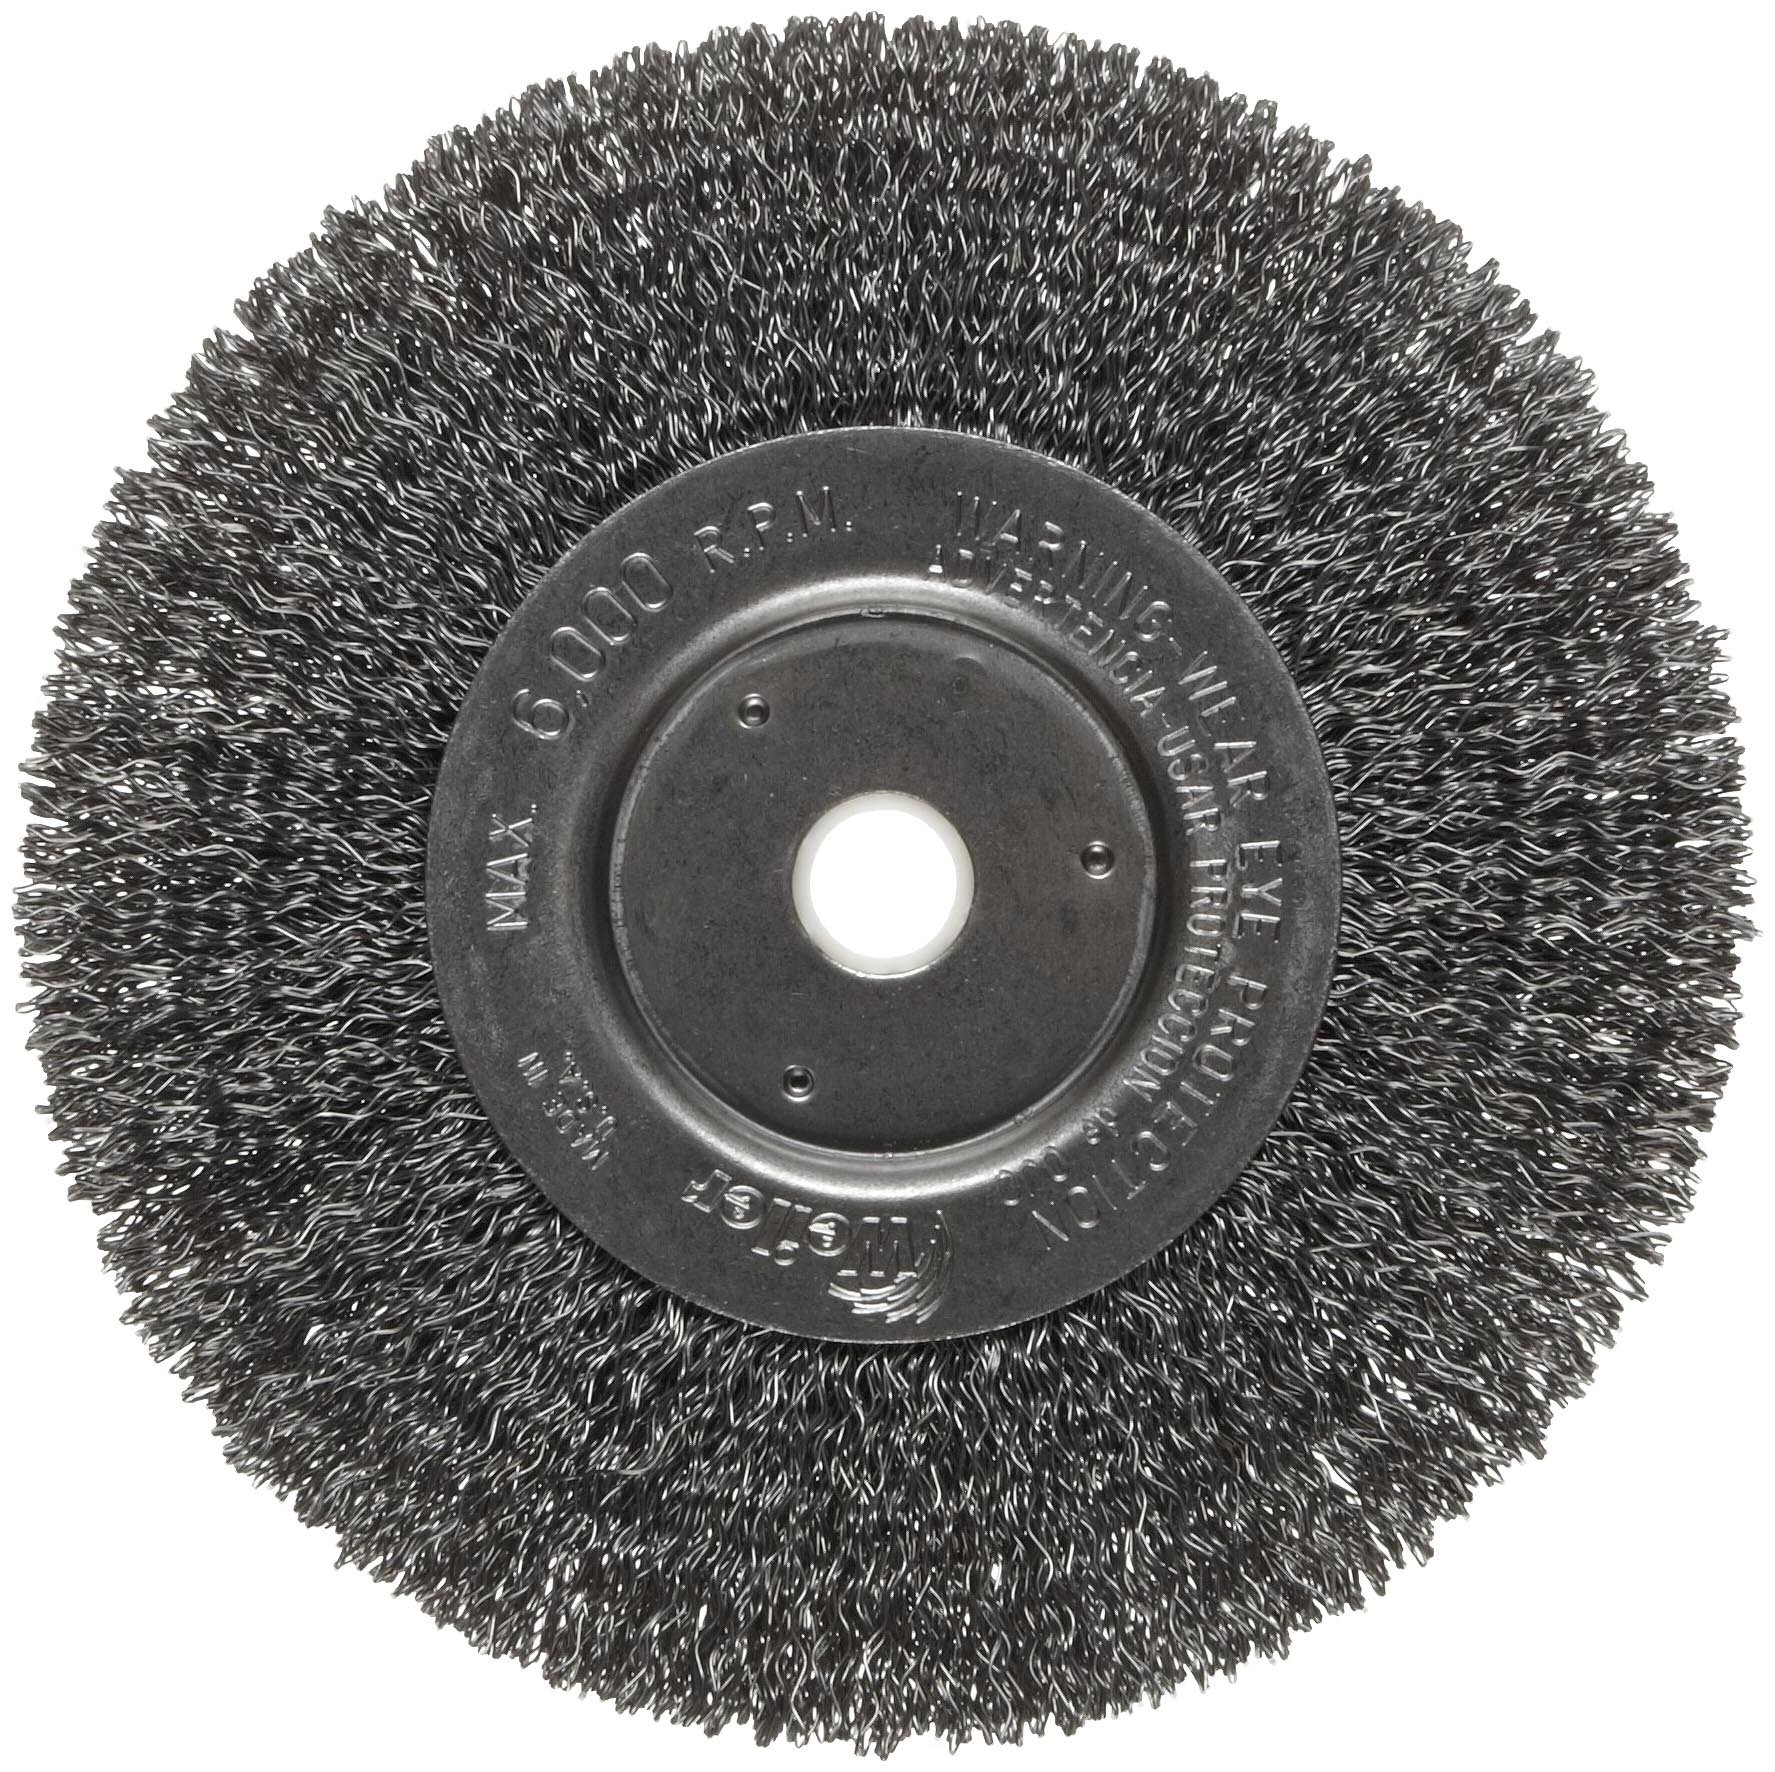 Weiler Trulock Narrow Face Wire Wheel Brush, Round Hole, Steel, Crimped Wire, 6'' Diameter, 0.014'' Wire Diameter, 5/8-1/2'' Arbor, 1-7/16'' Bristle Length, 3/4'' Brush Face Width, 6000 rpm